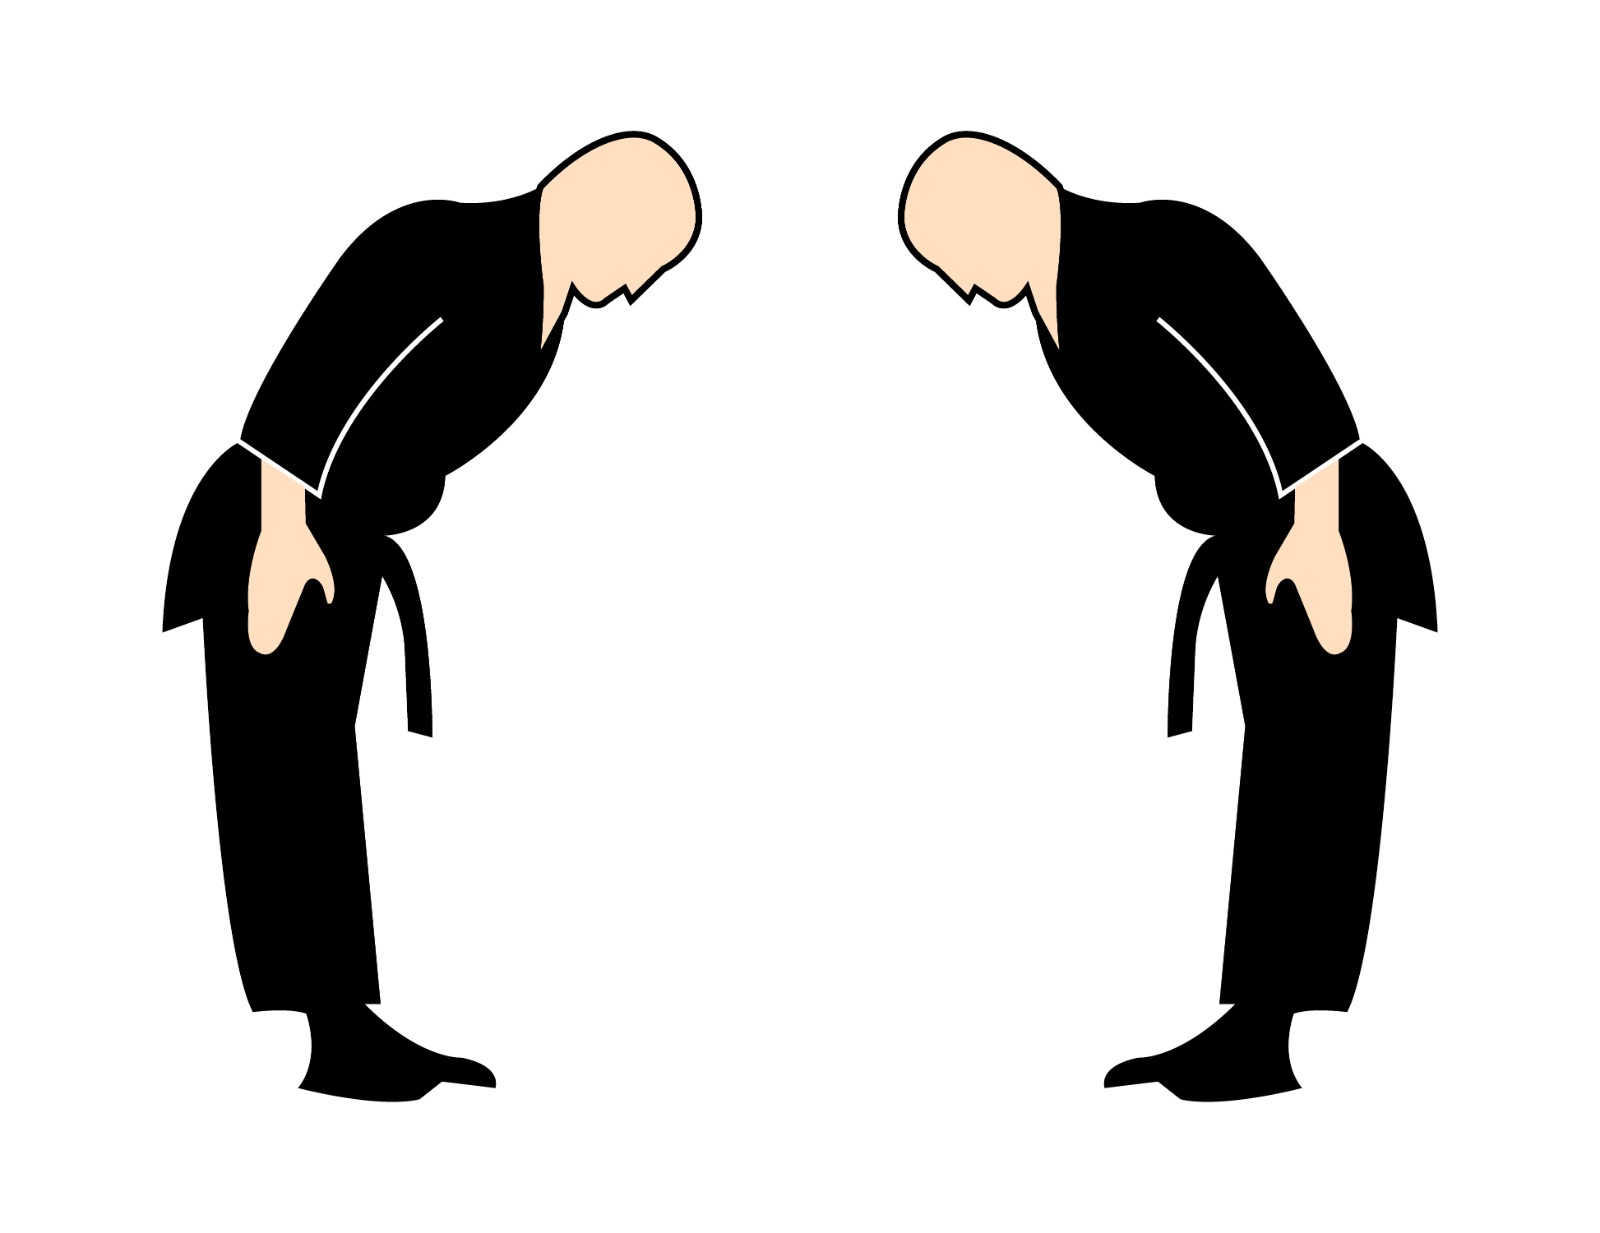 Is Bowing to Your Sensei in Martial Arts Allowed